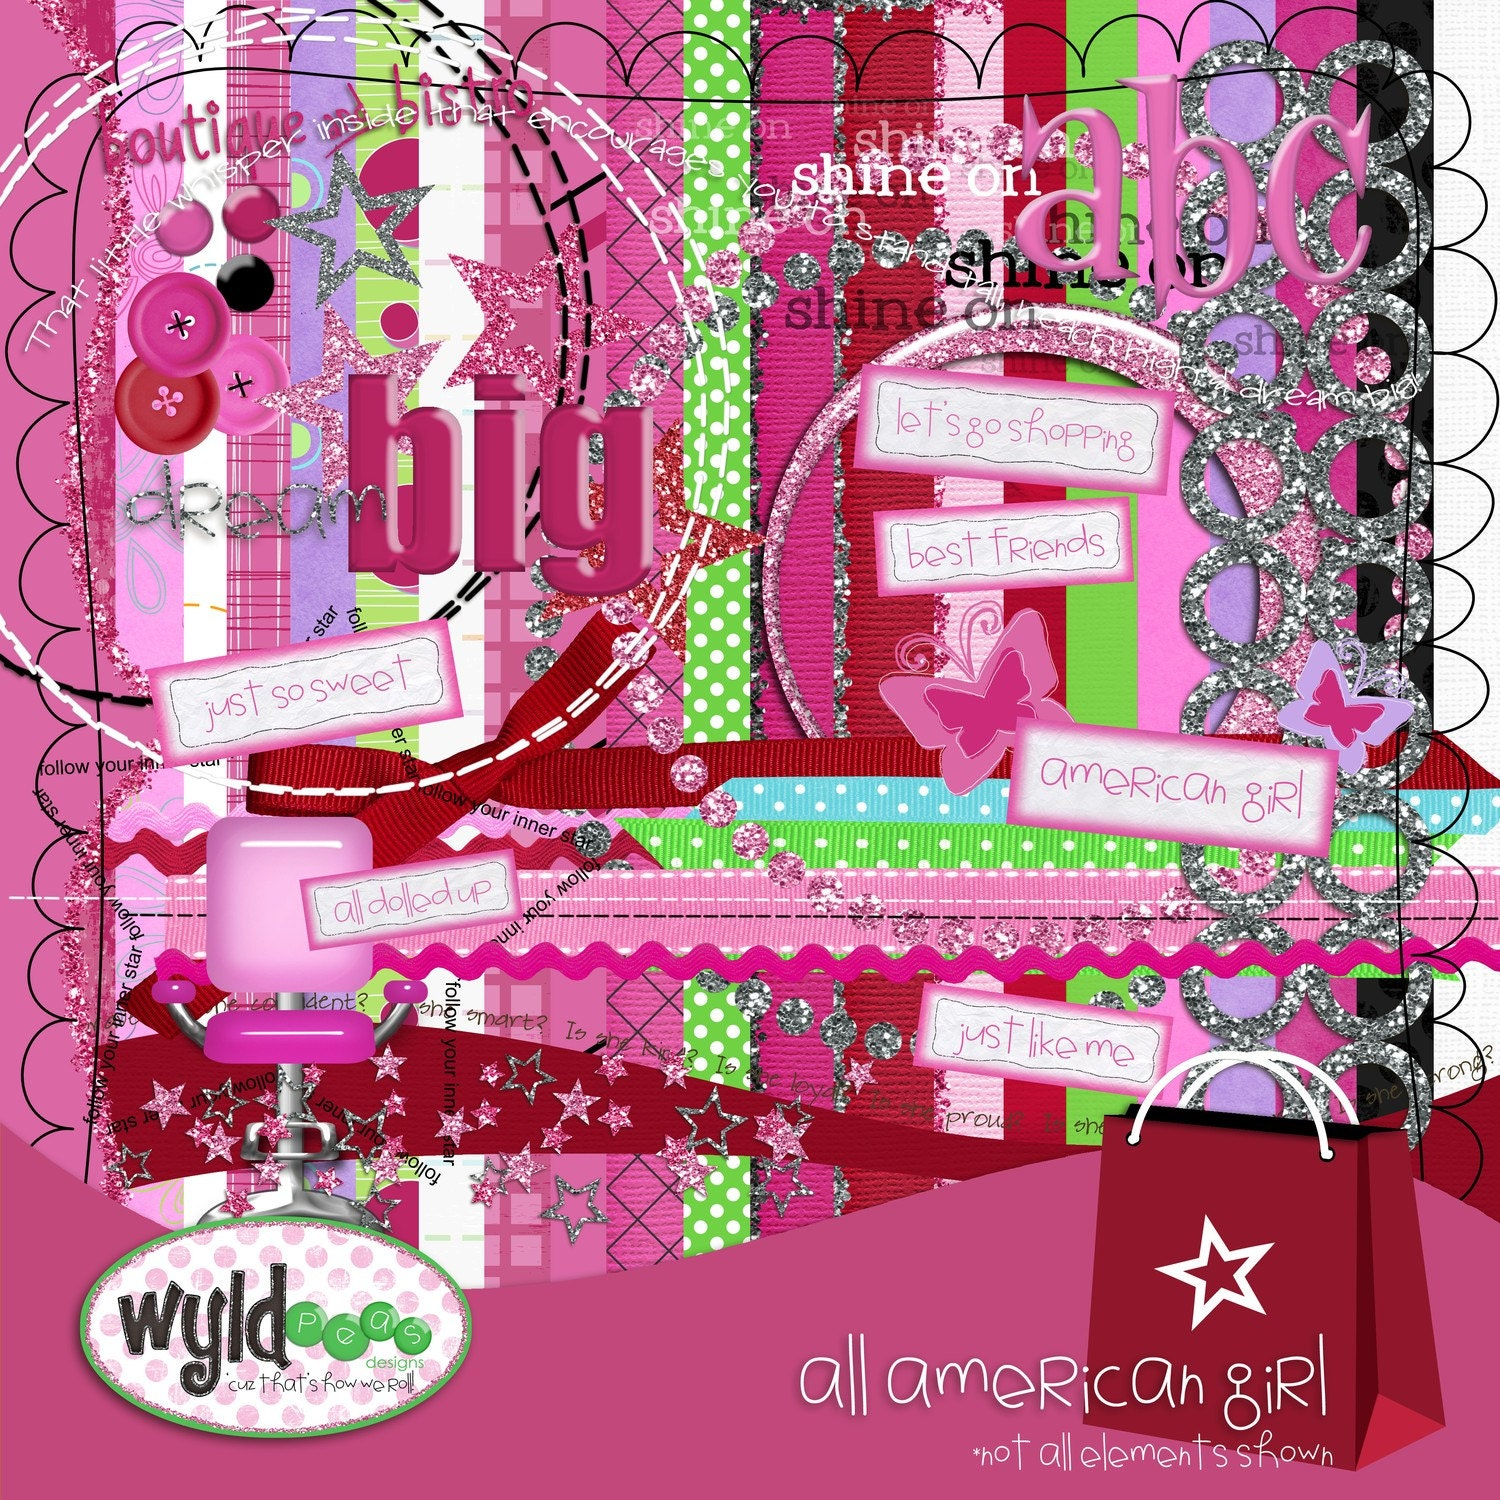 American Girl Crafts Learn To Scrapbook Kit 59% Off!